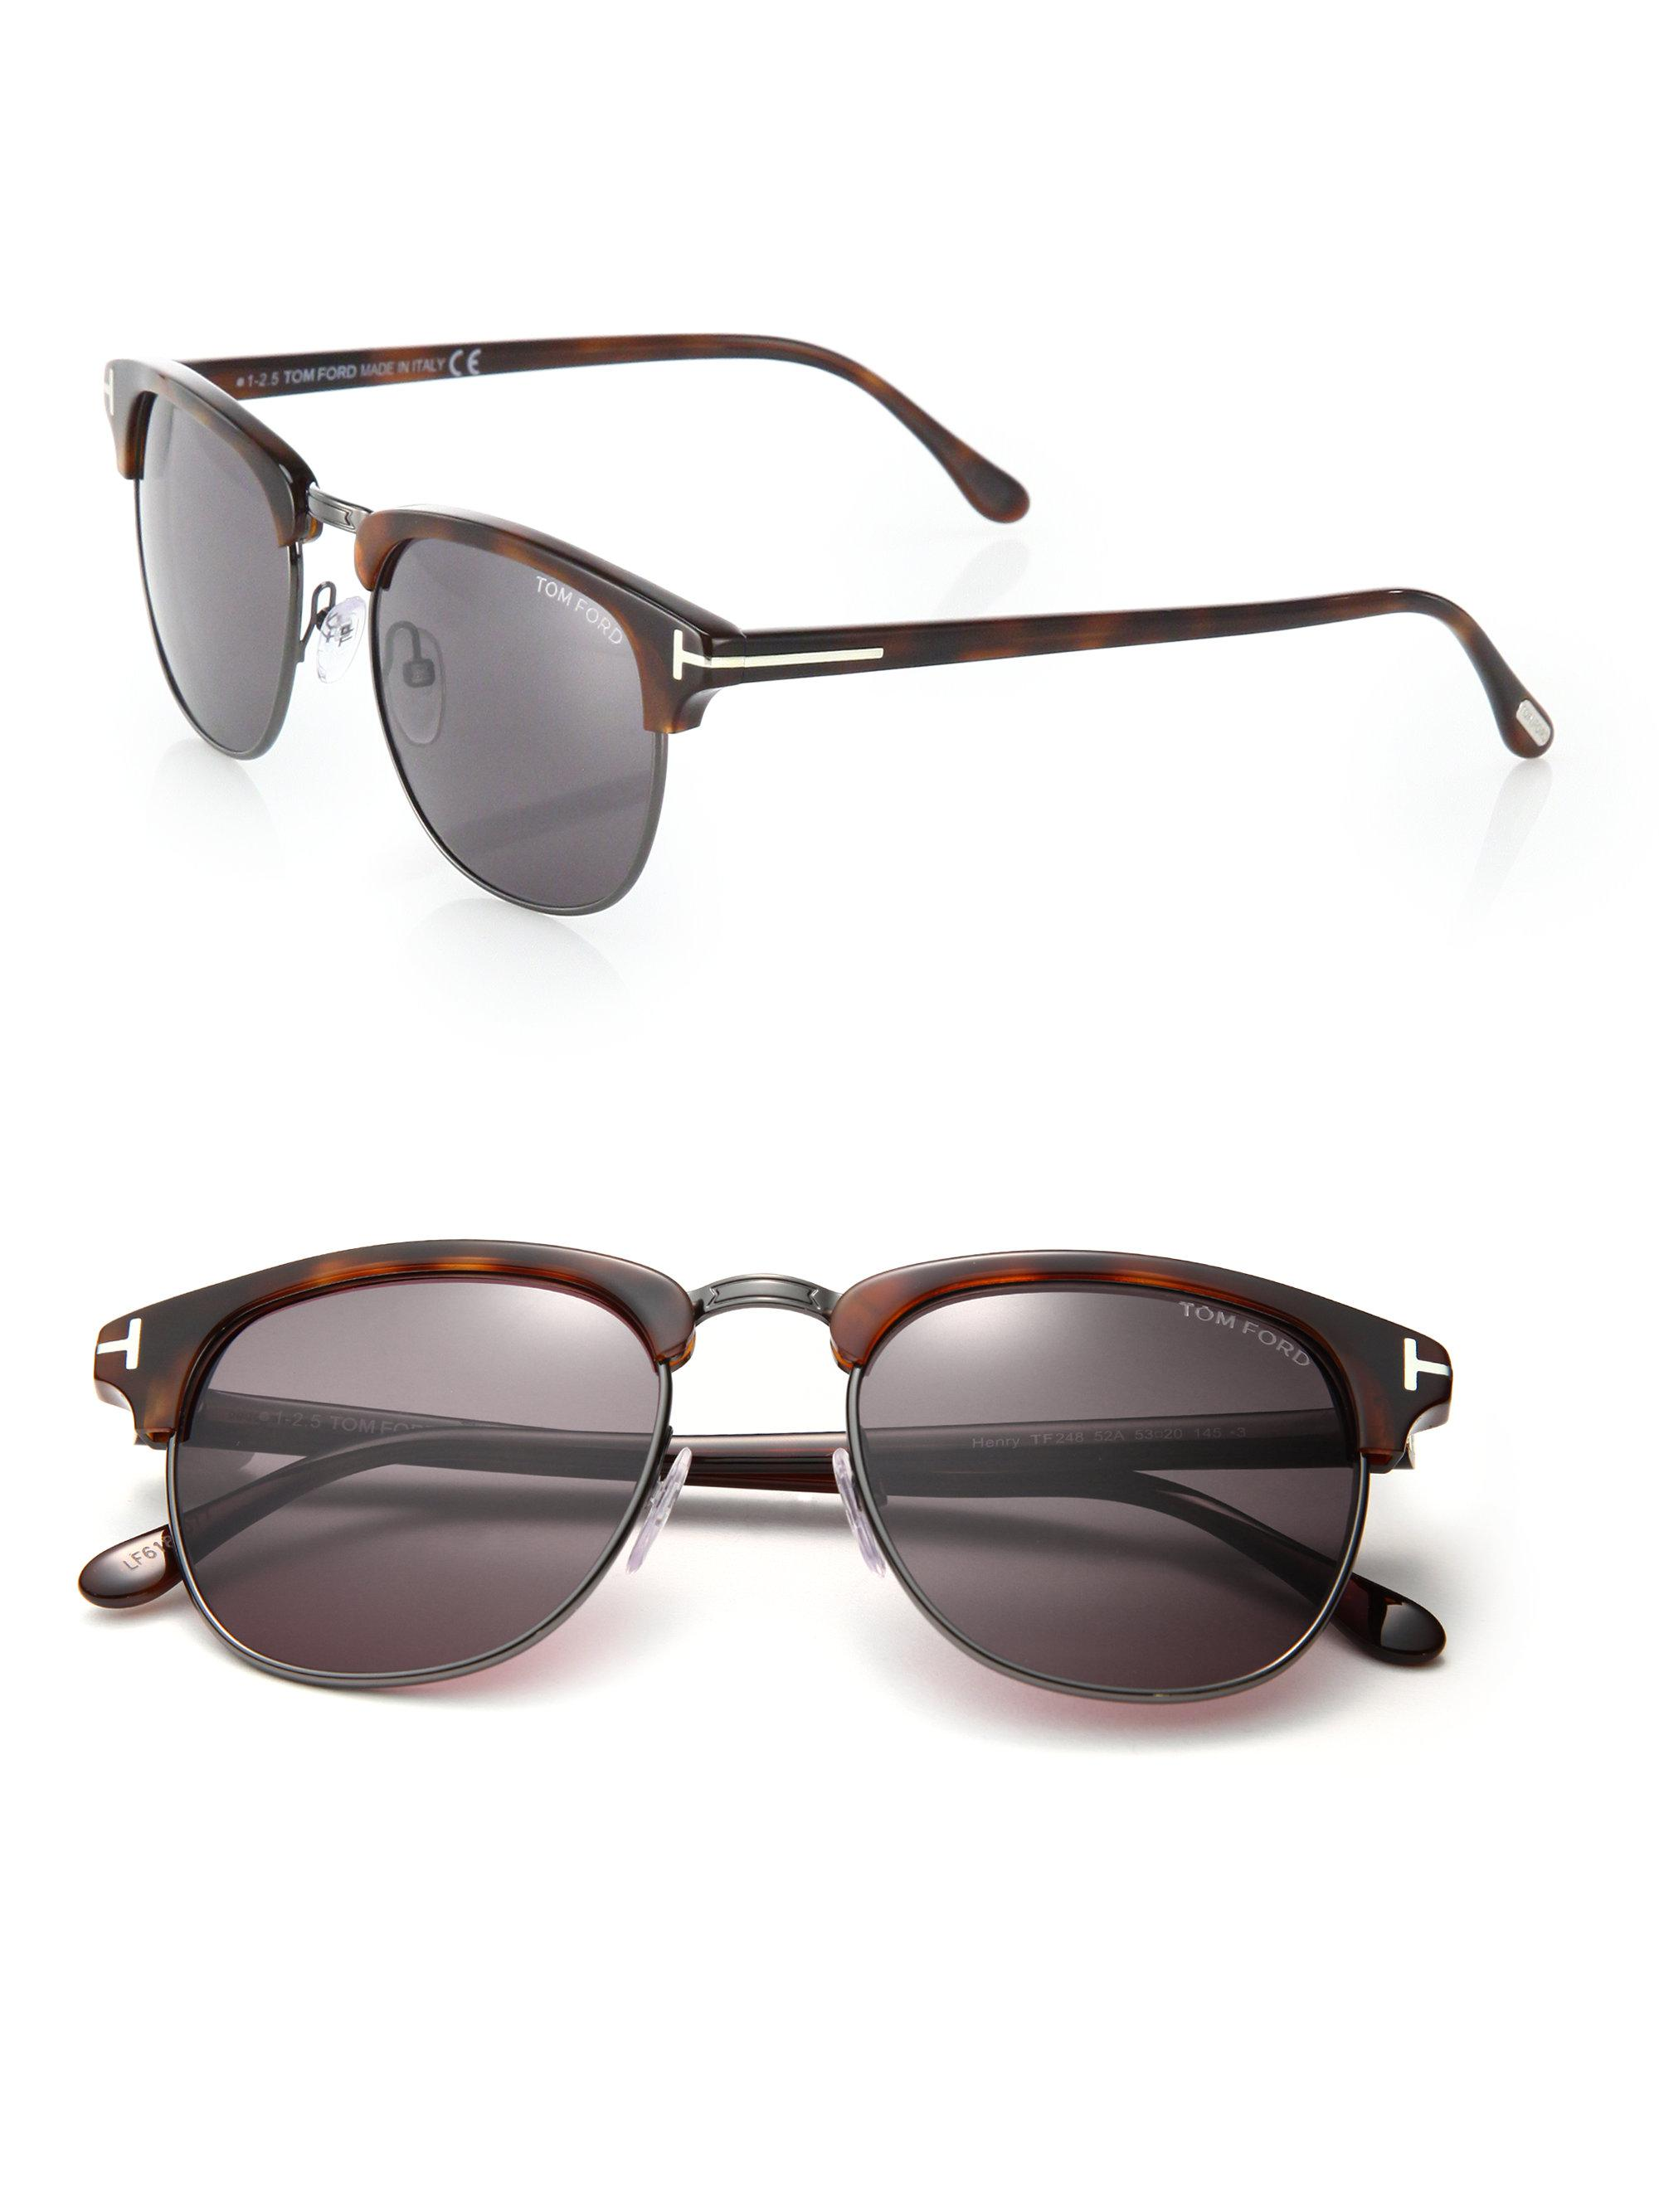 f6464a65cb82 Tom Ford Henry 53mm Round Sunglasses in Brown for Men - Lyst